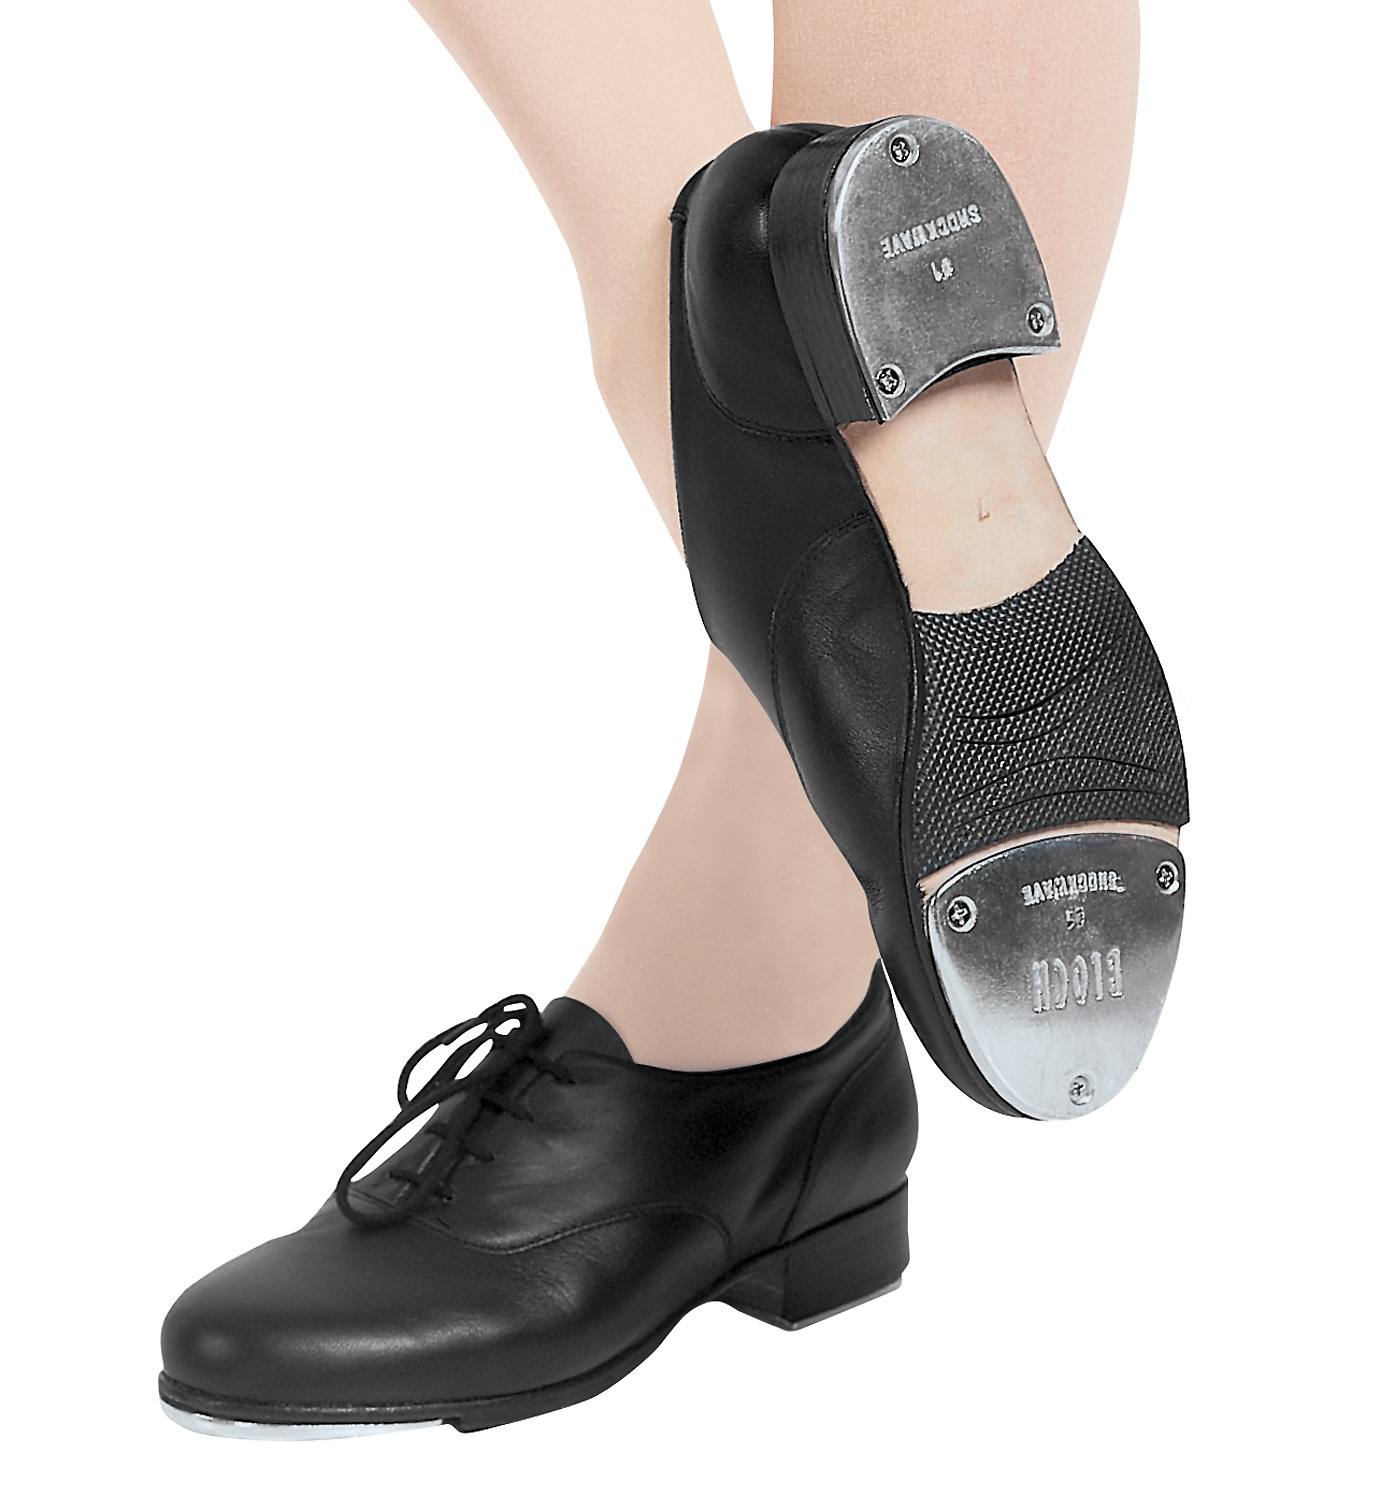 Irish Dancing Shoes Our collection of Irish dance shoes are suitable for beginners right through to more professional dancers. Jig shoes by Inishfree and Goleen include pumps, split sole and heavy heel types perfect for all types of Irish dancing.